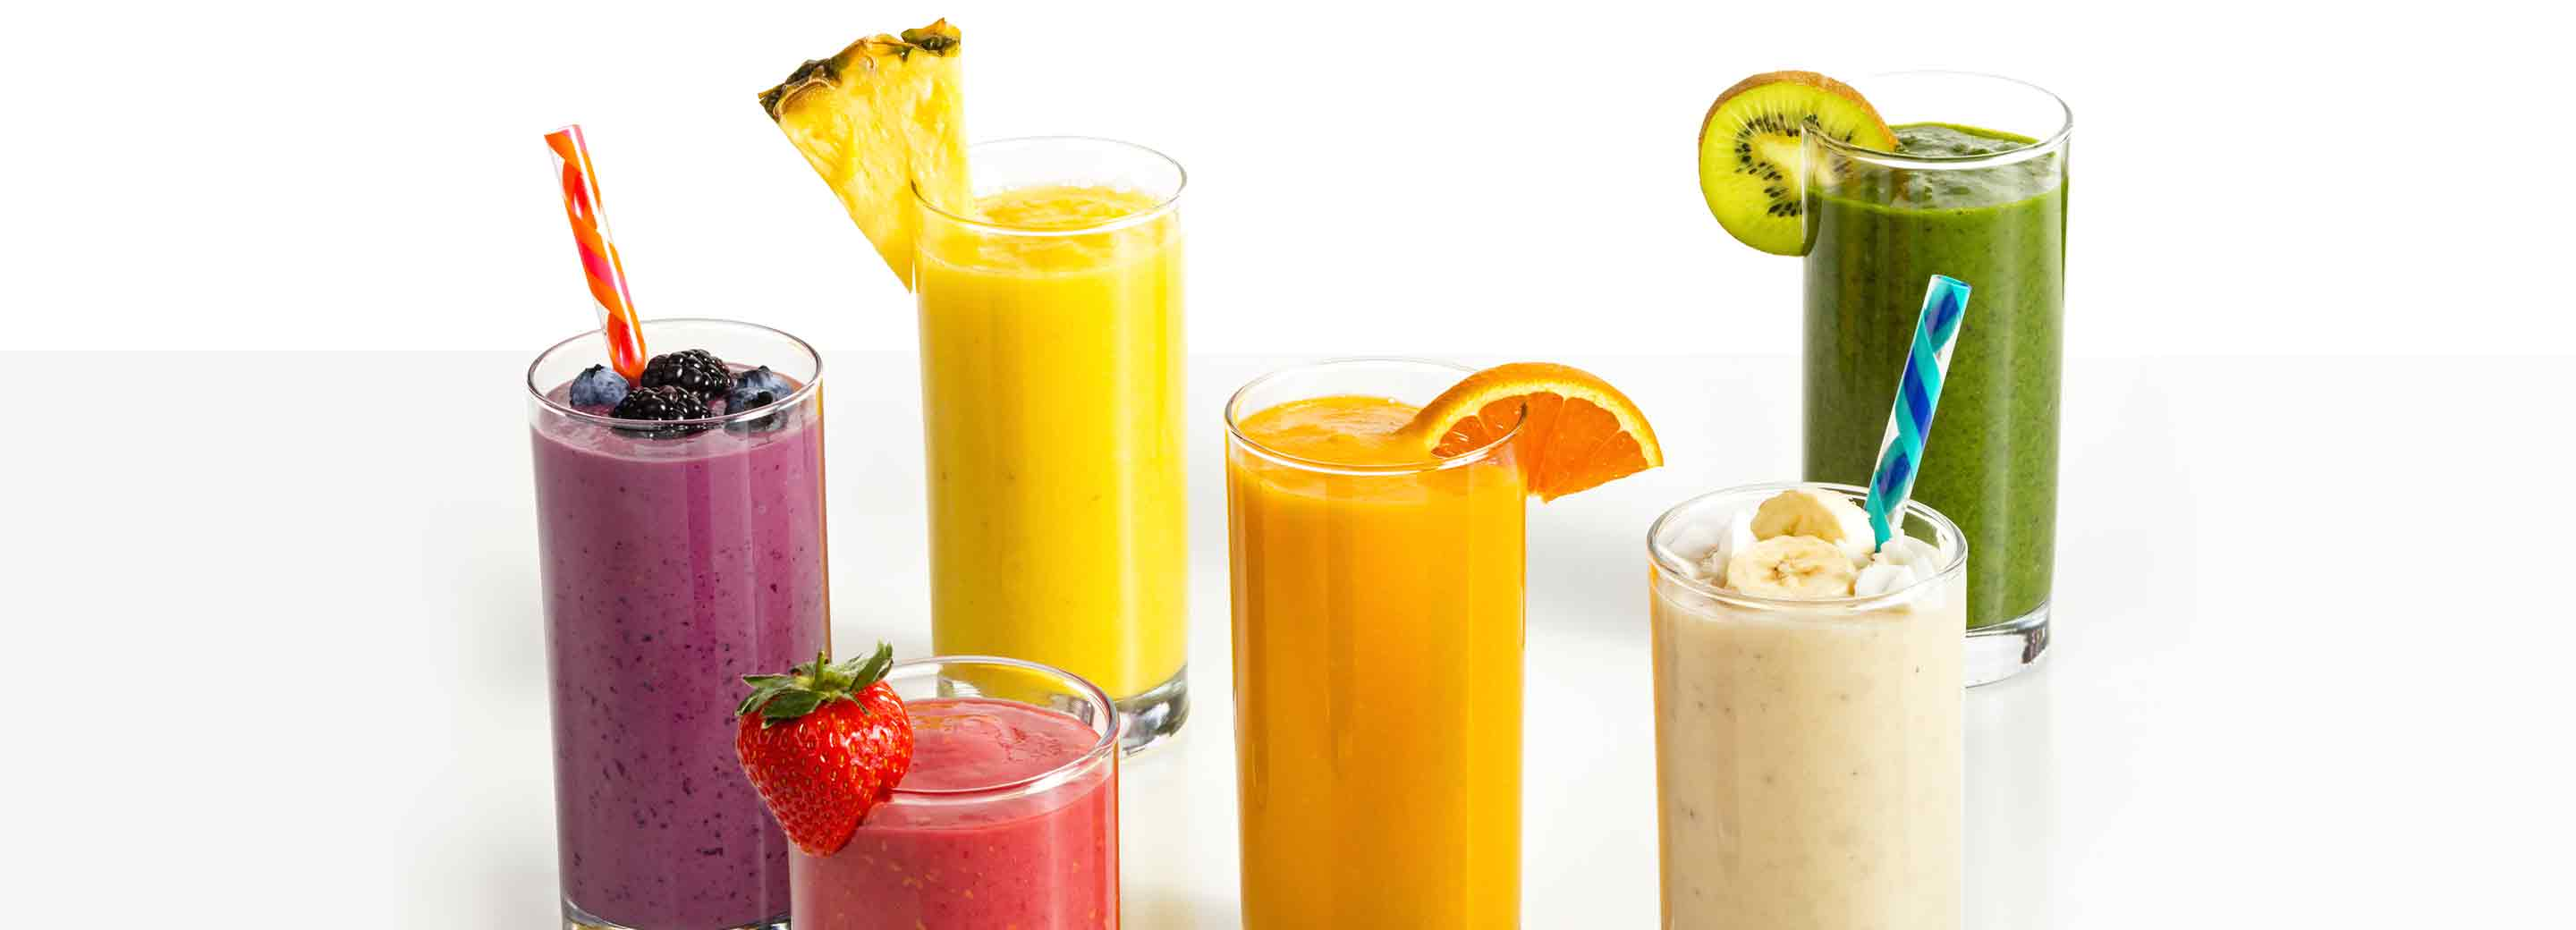 article and smoothies image